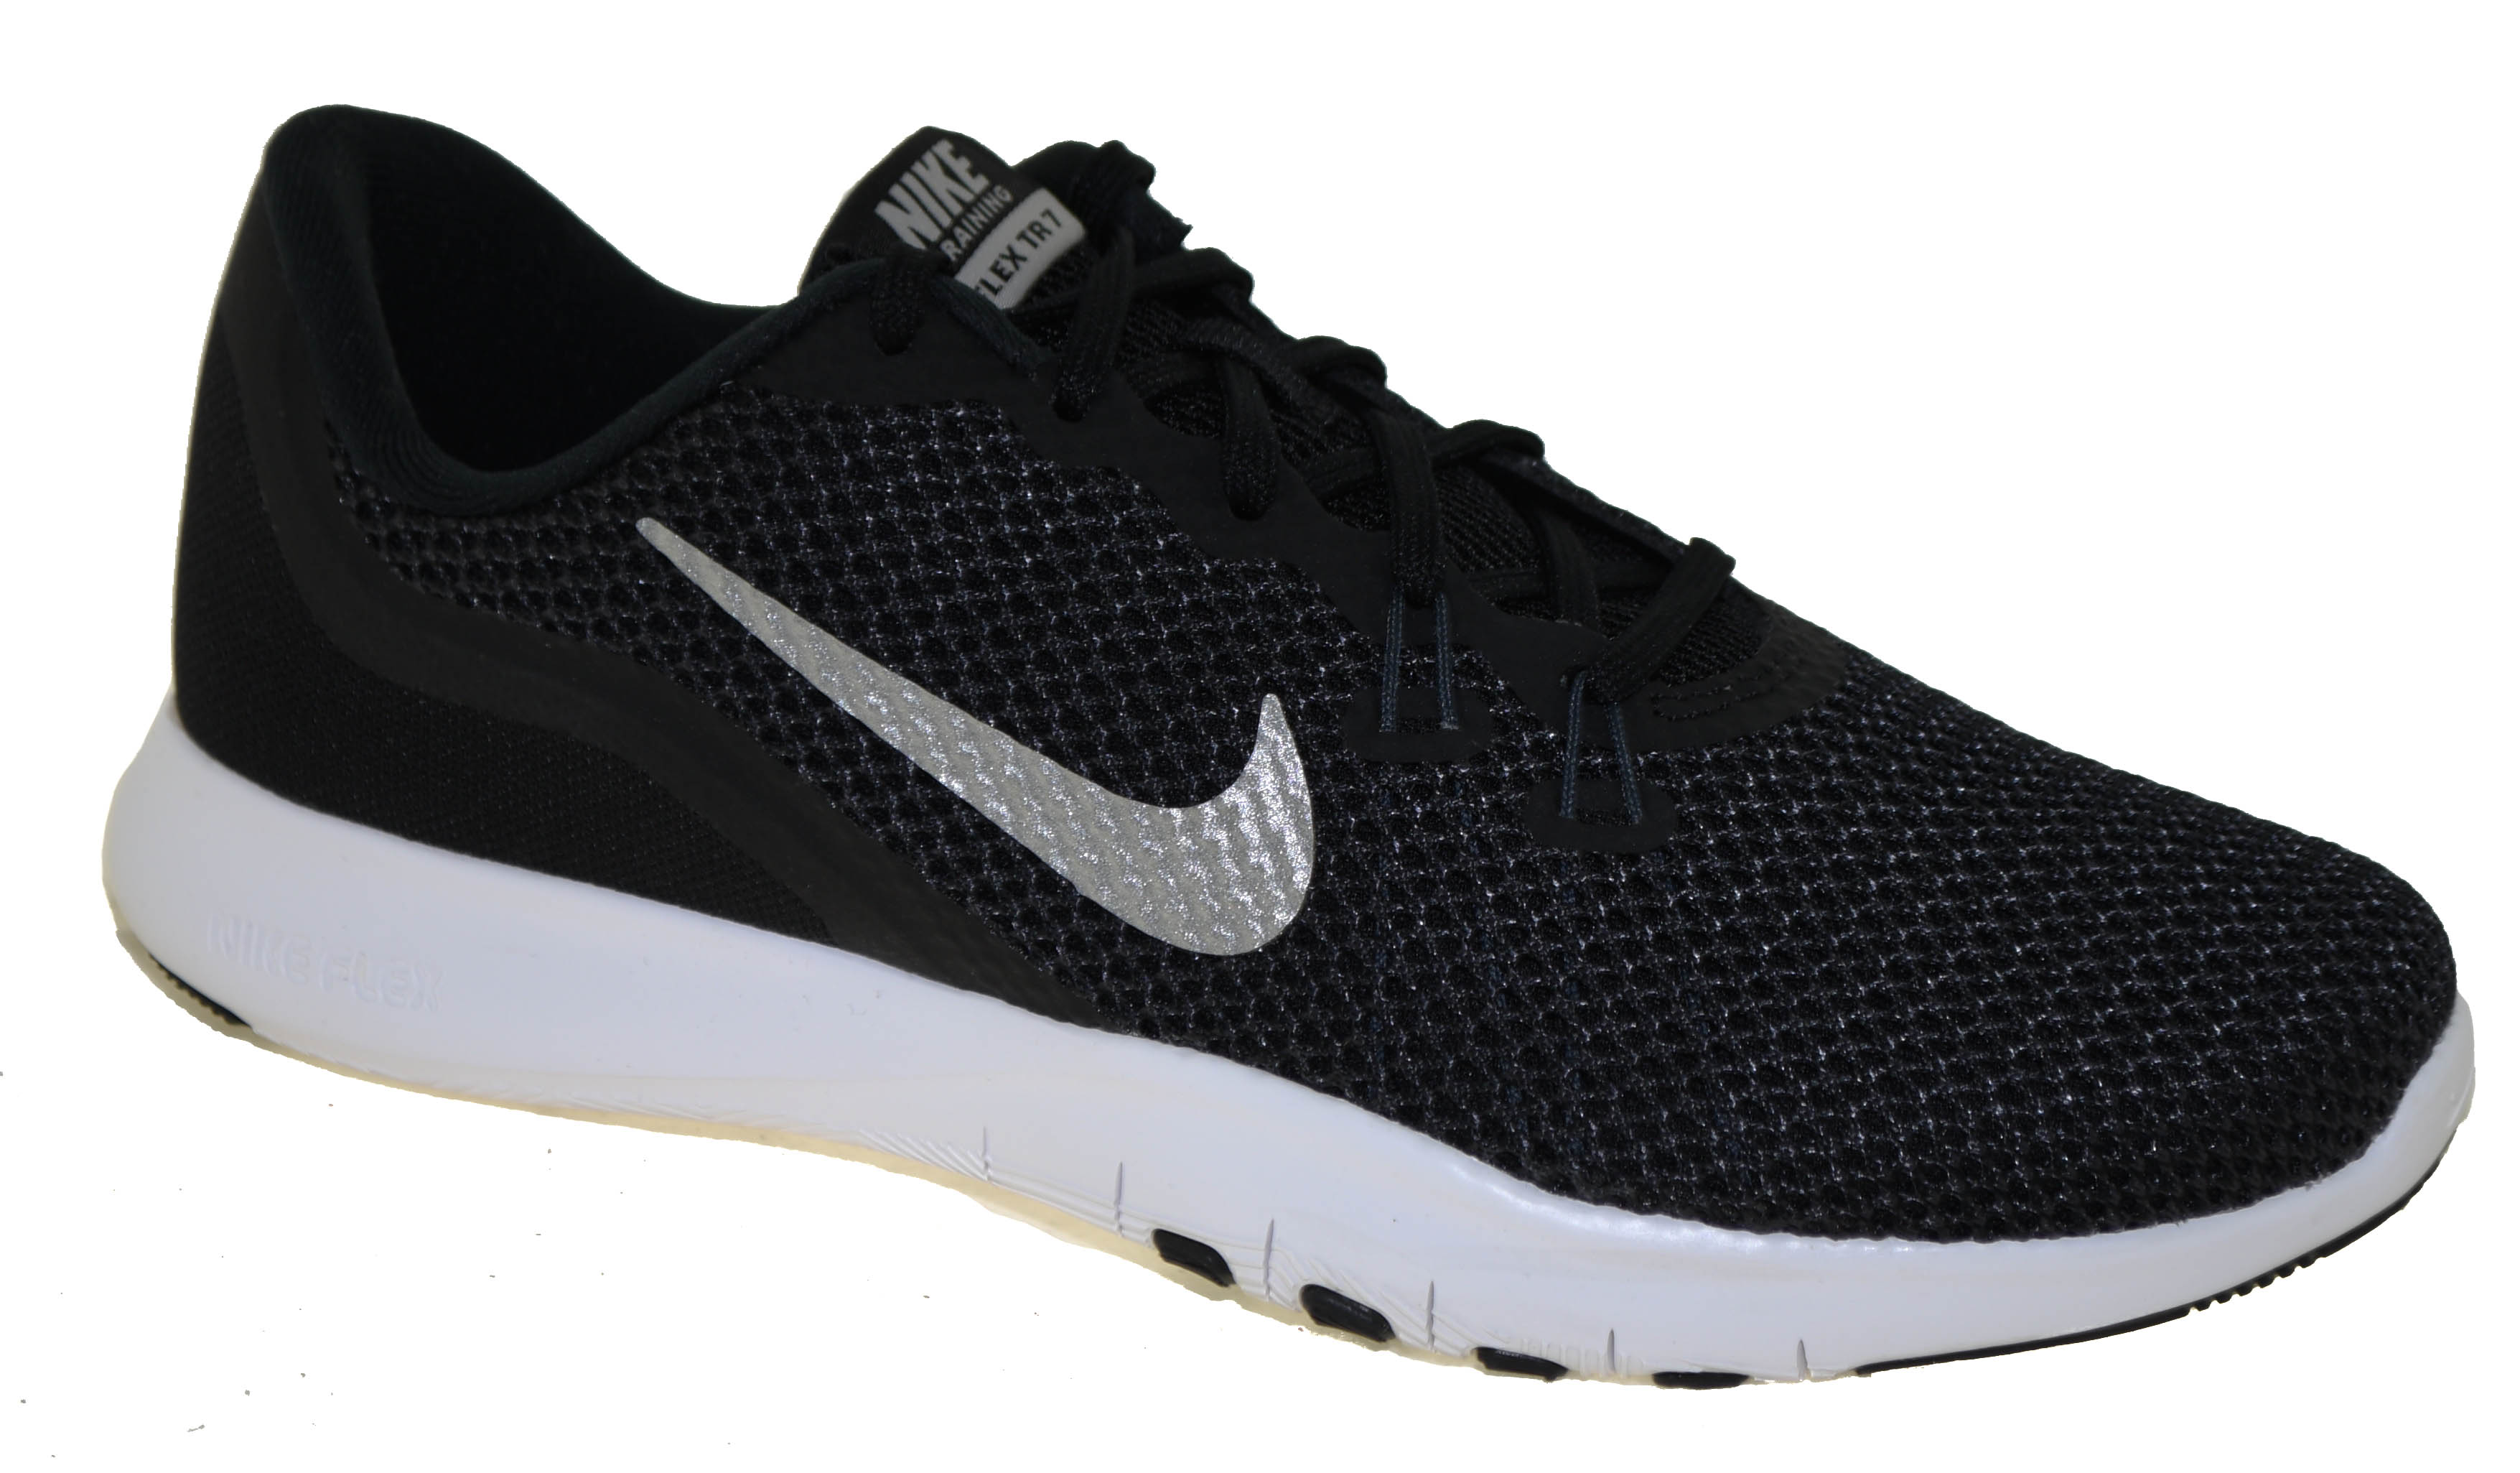 afefe2d0d7d Click Thumbnails to Enlarge. Push yourself in the Nike Flex Trainer 7  Training Shoe.